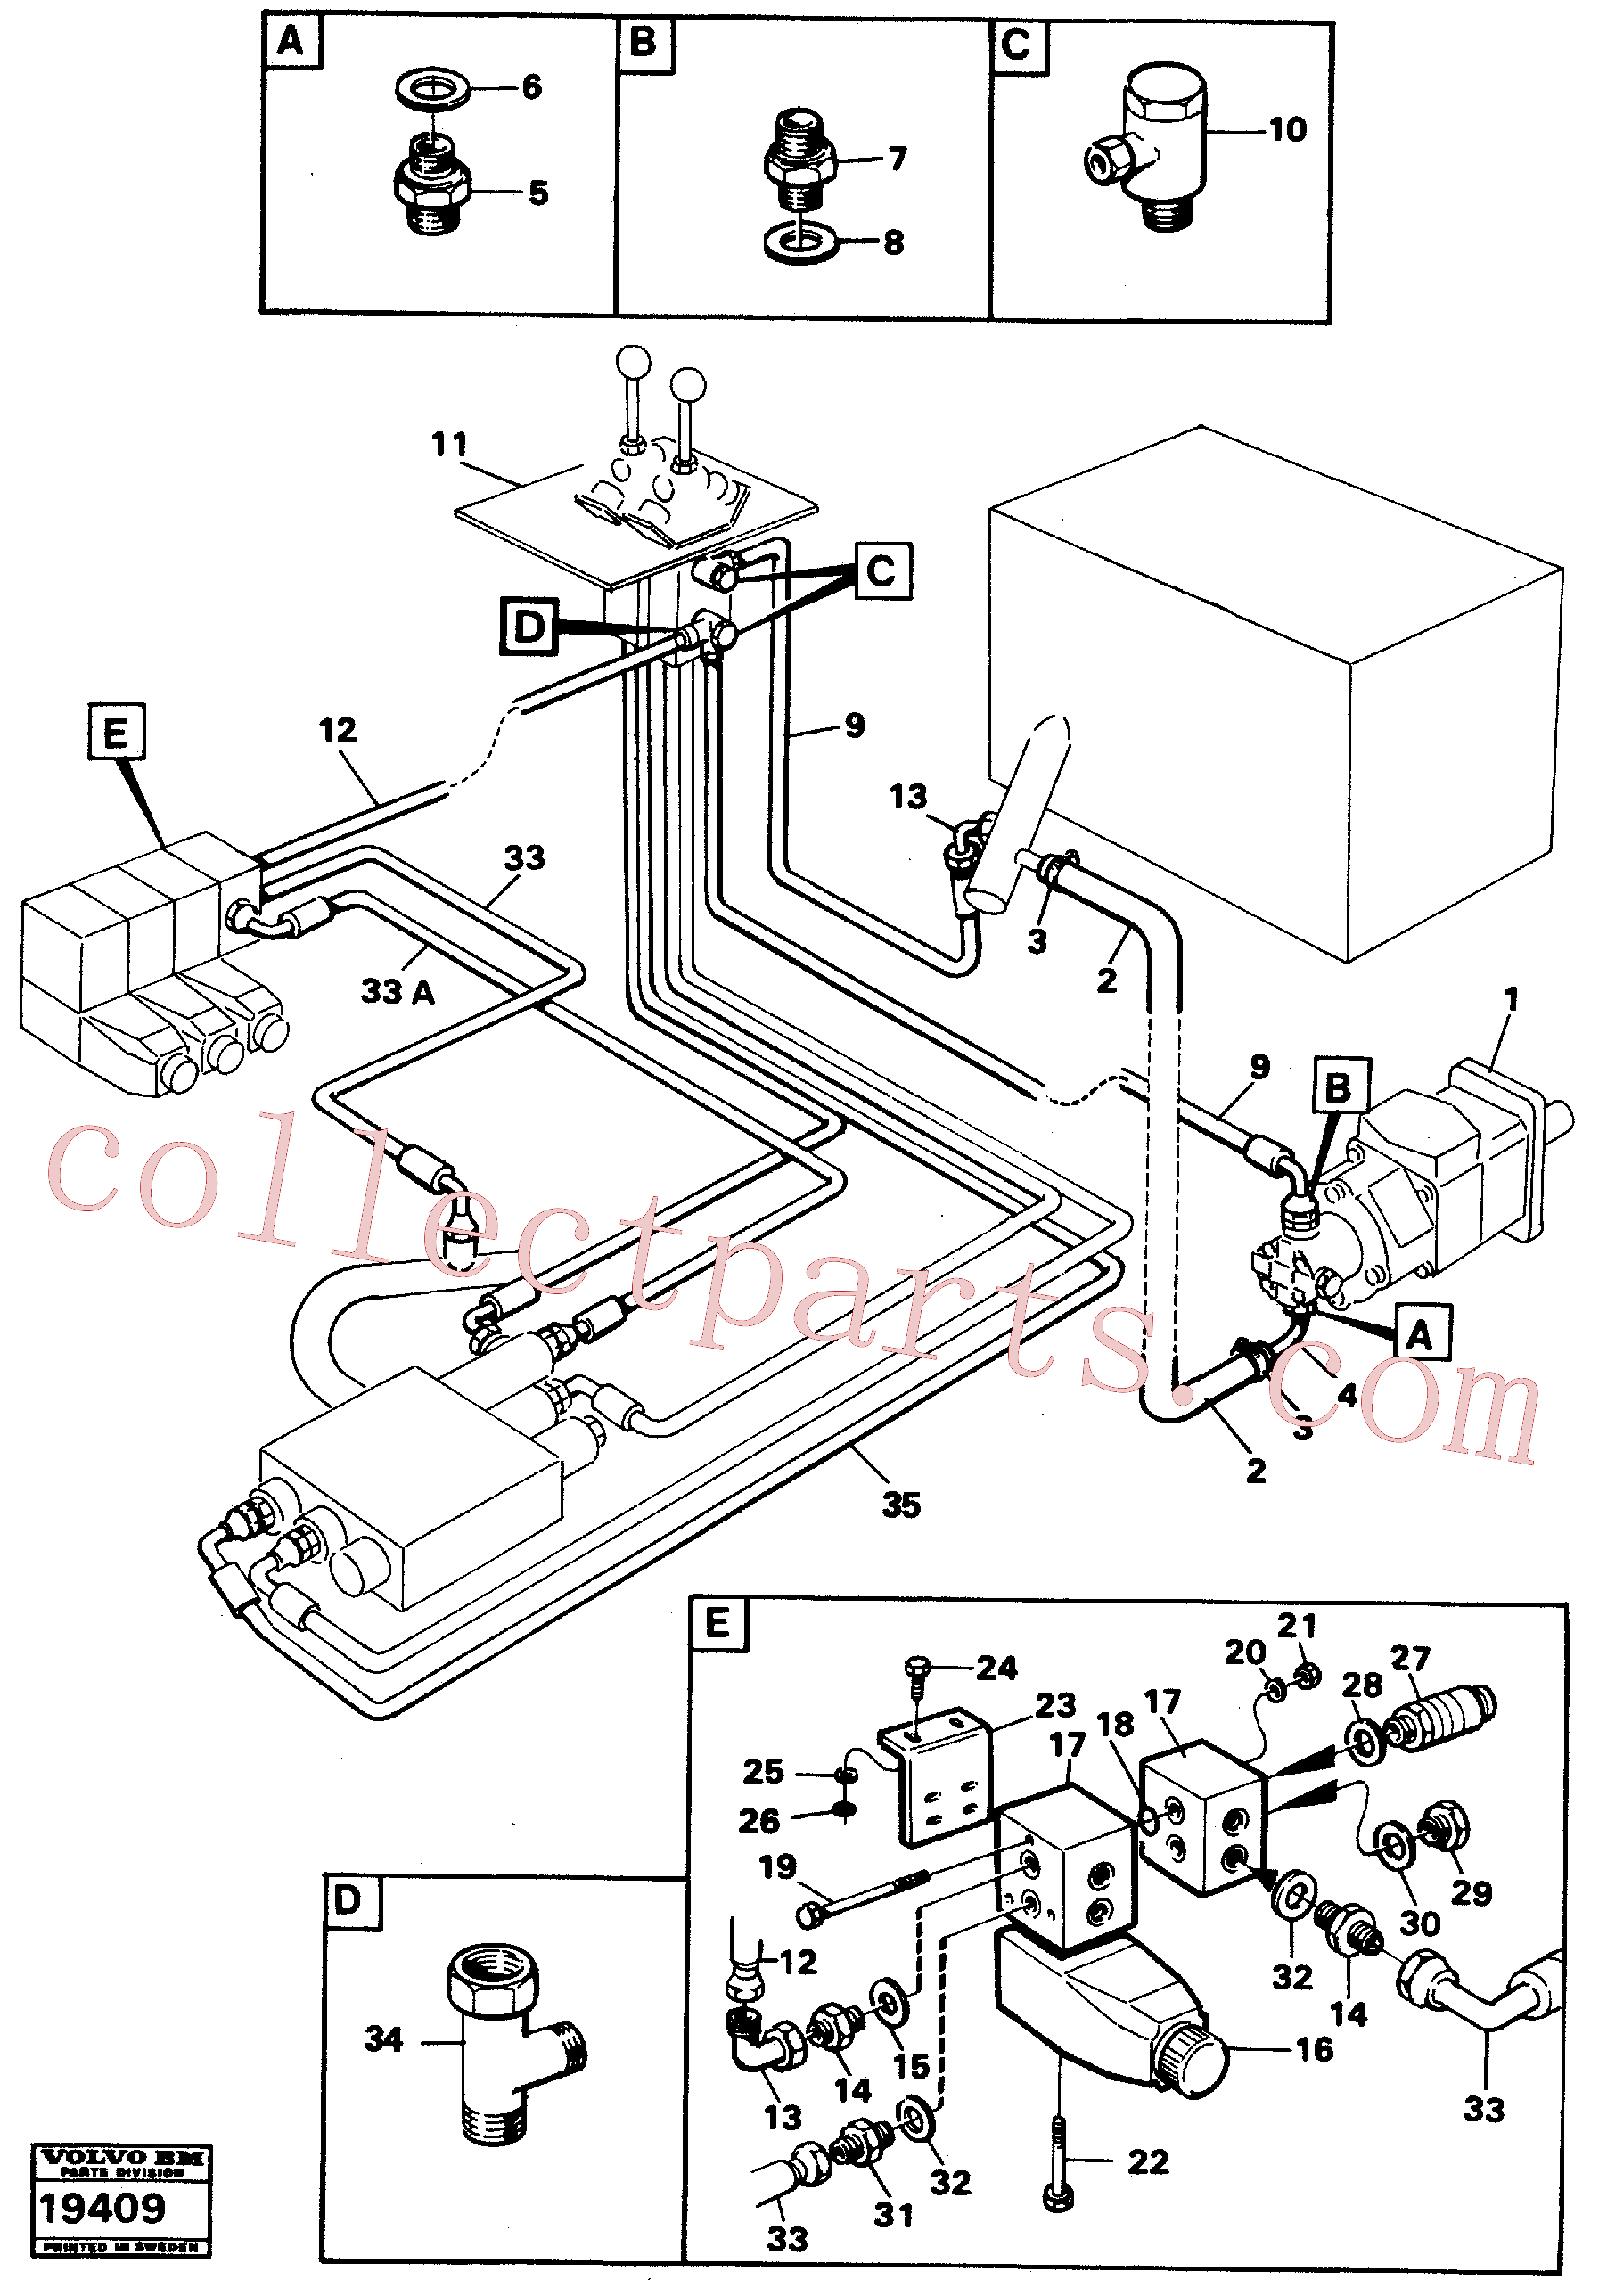 VOE960168 for Volvo Servo System: feed lines.(19409 assembly)